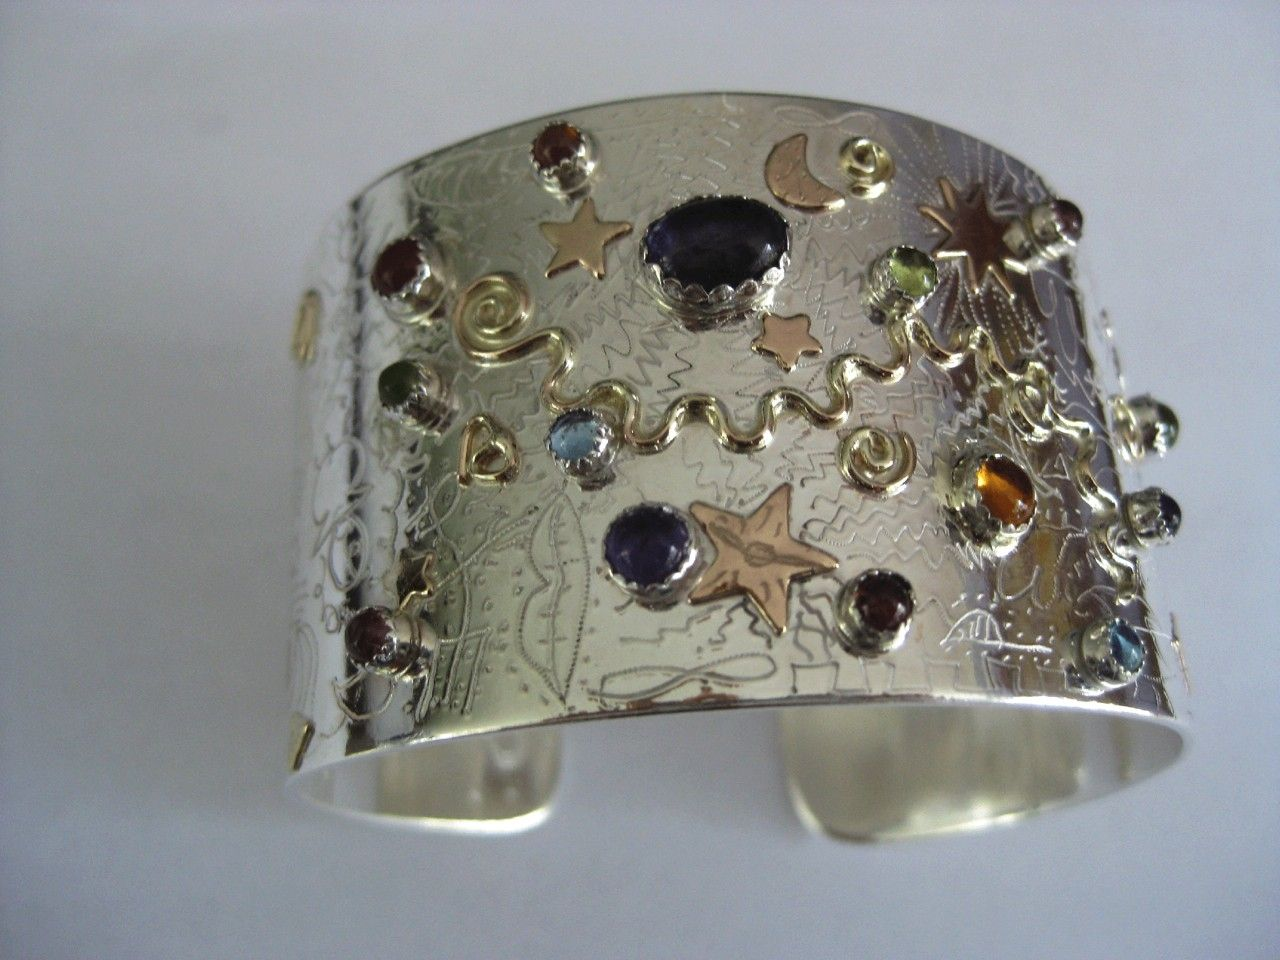 Hand Crafted Sterling Silver And 14k Gold Fill With Semi